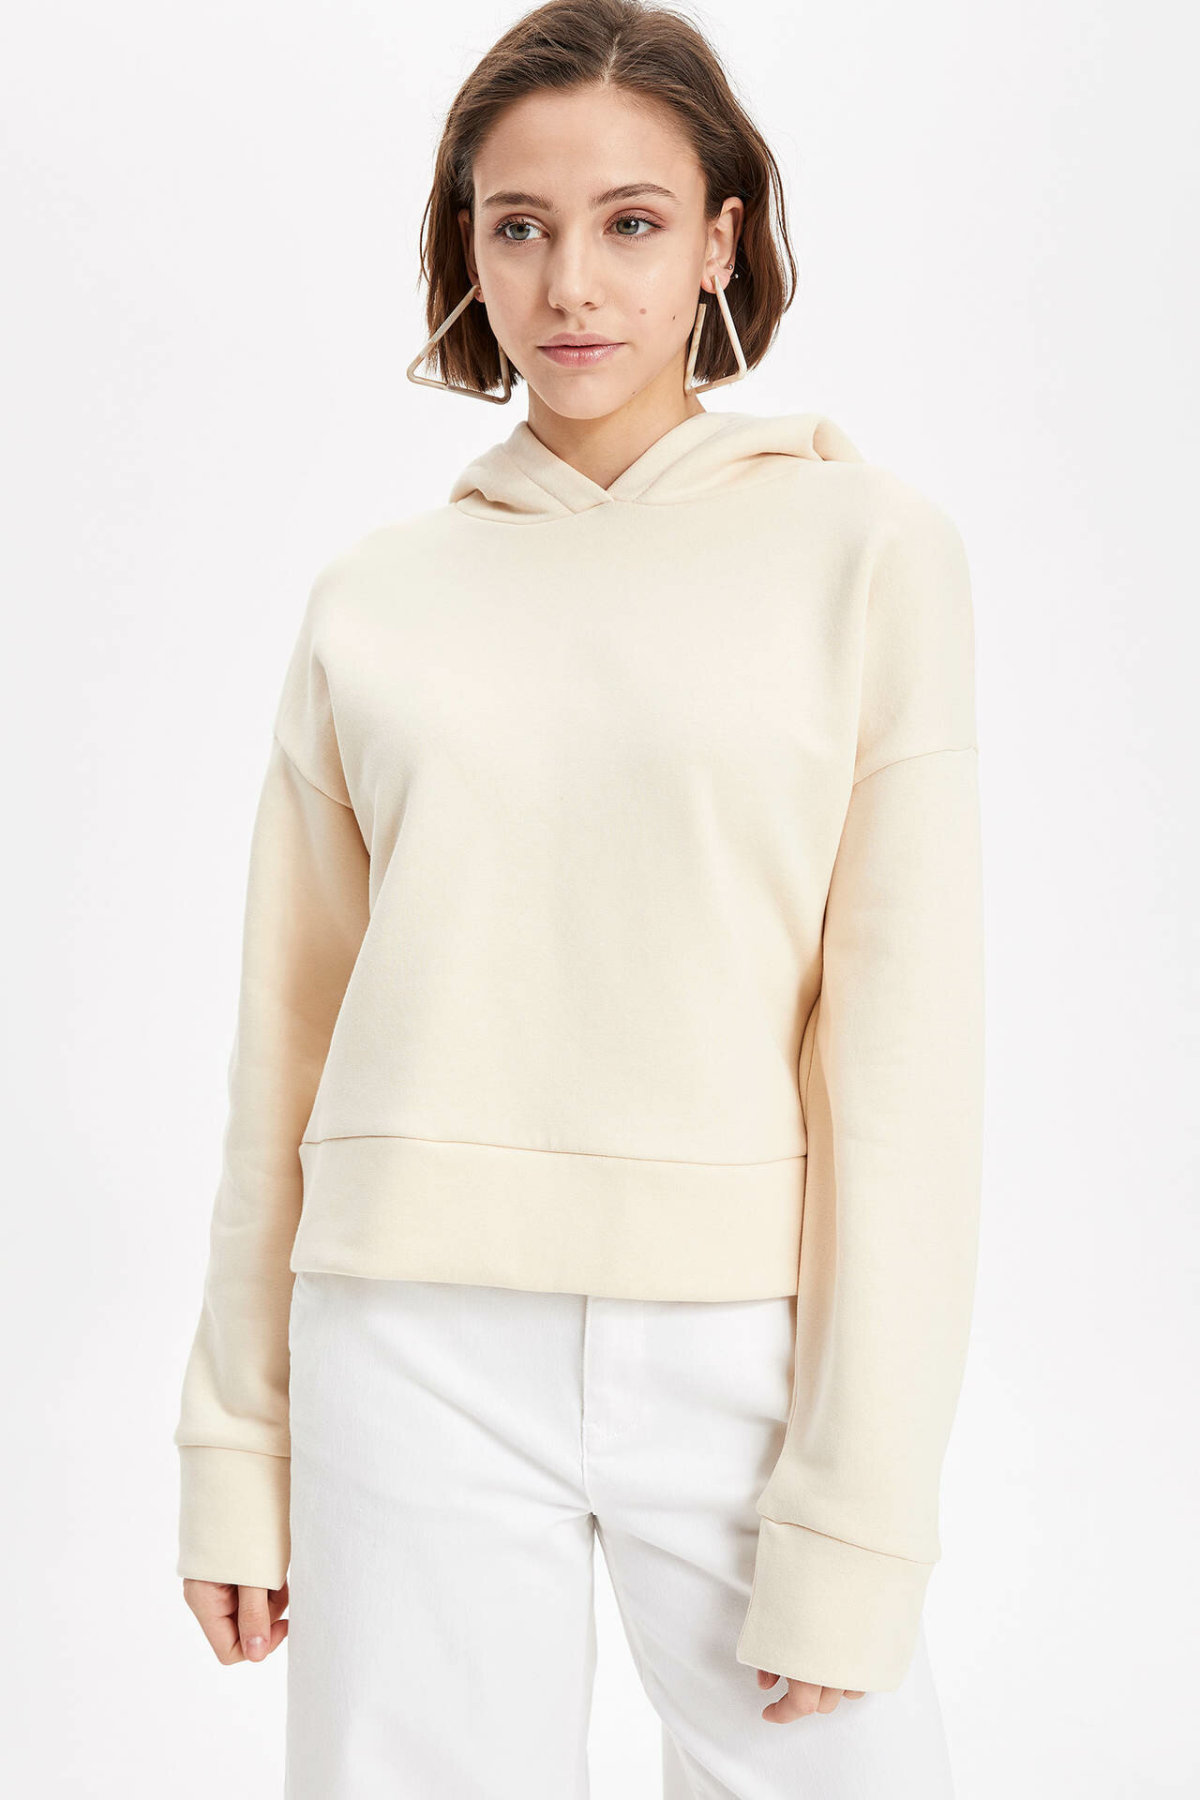 DeFacto Woman Simple Solid Hoodies Women Casual Long Sleeves Pullovers Loose Women Autumn New -K8497AZ18CW